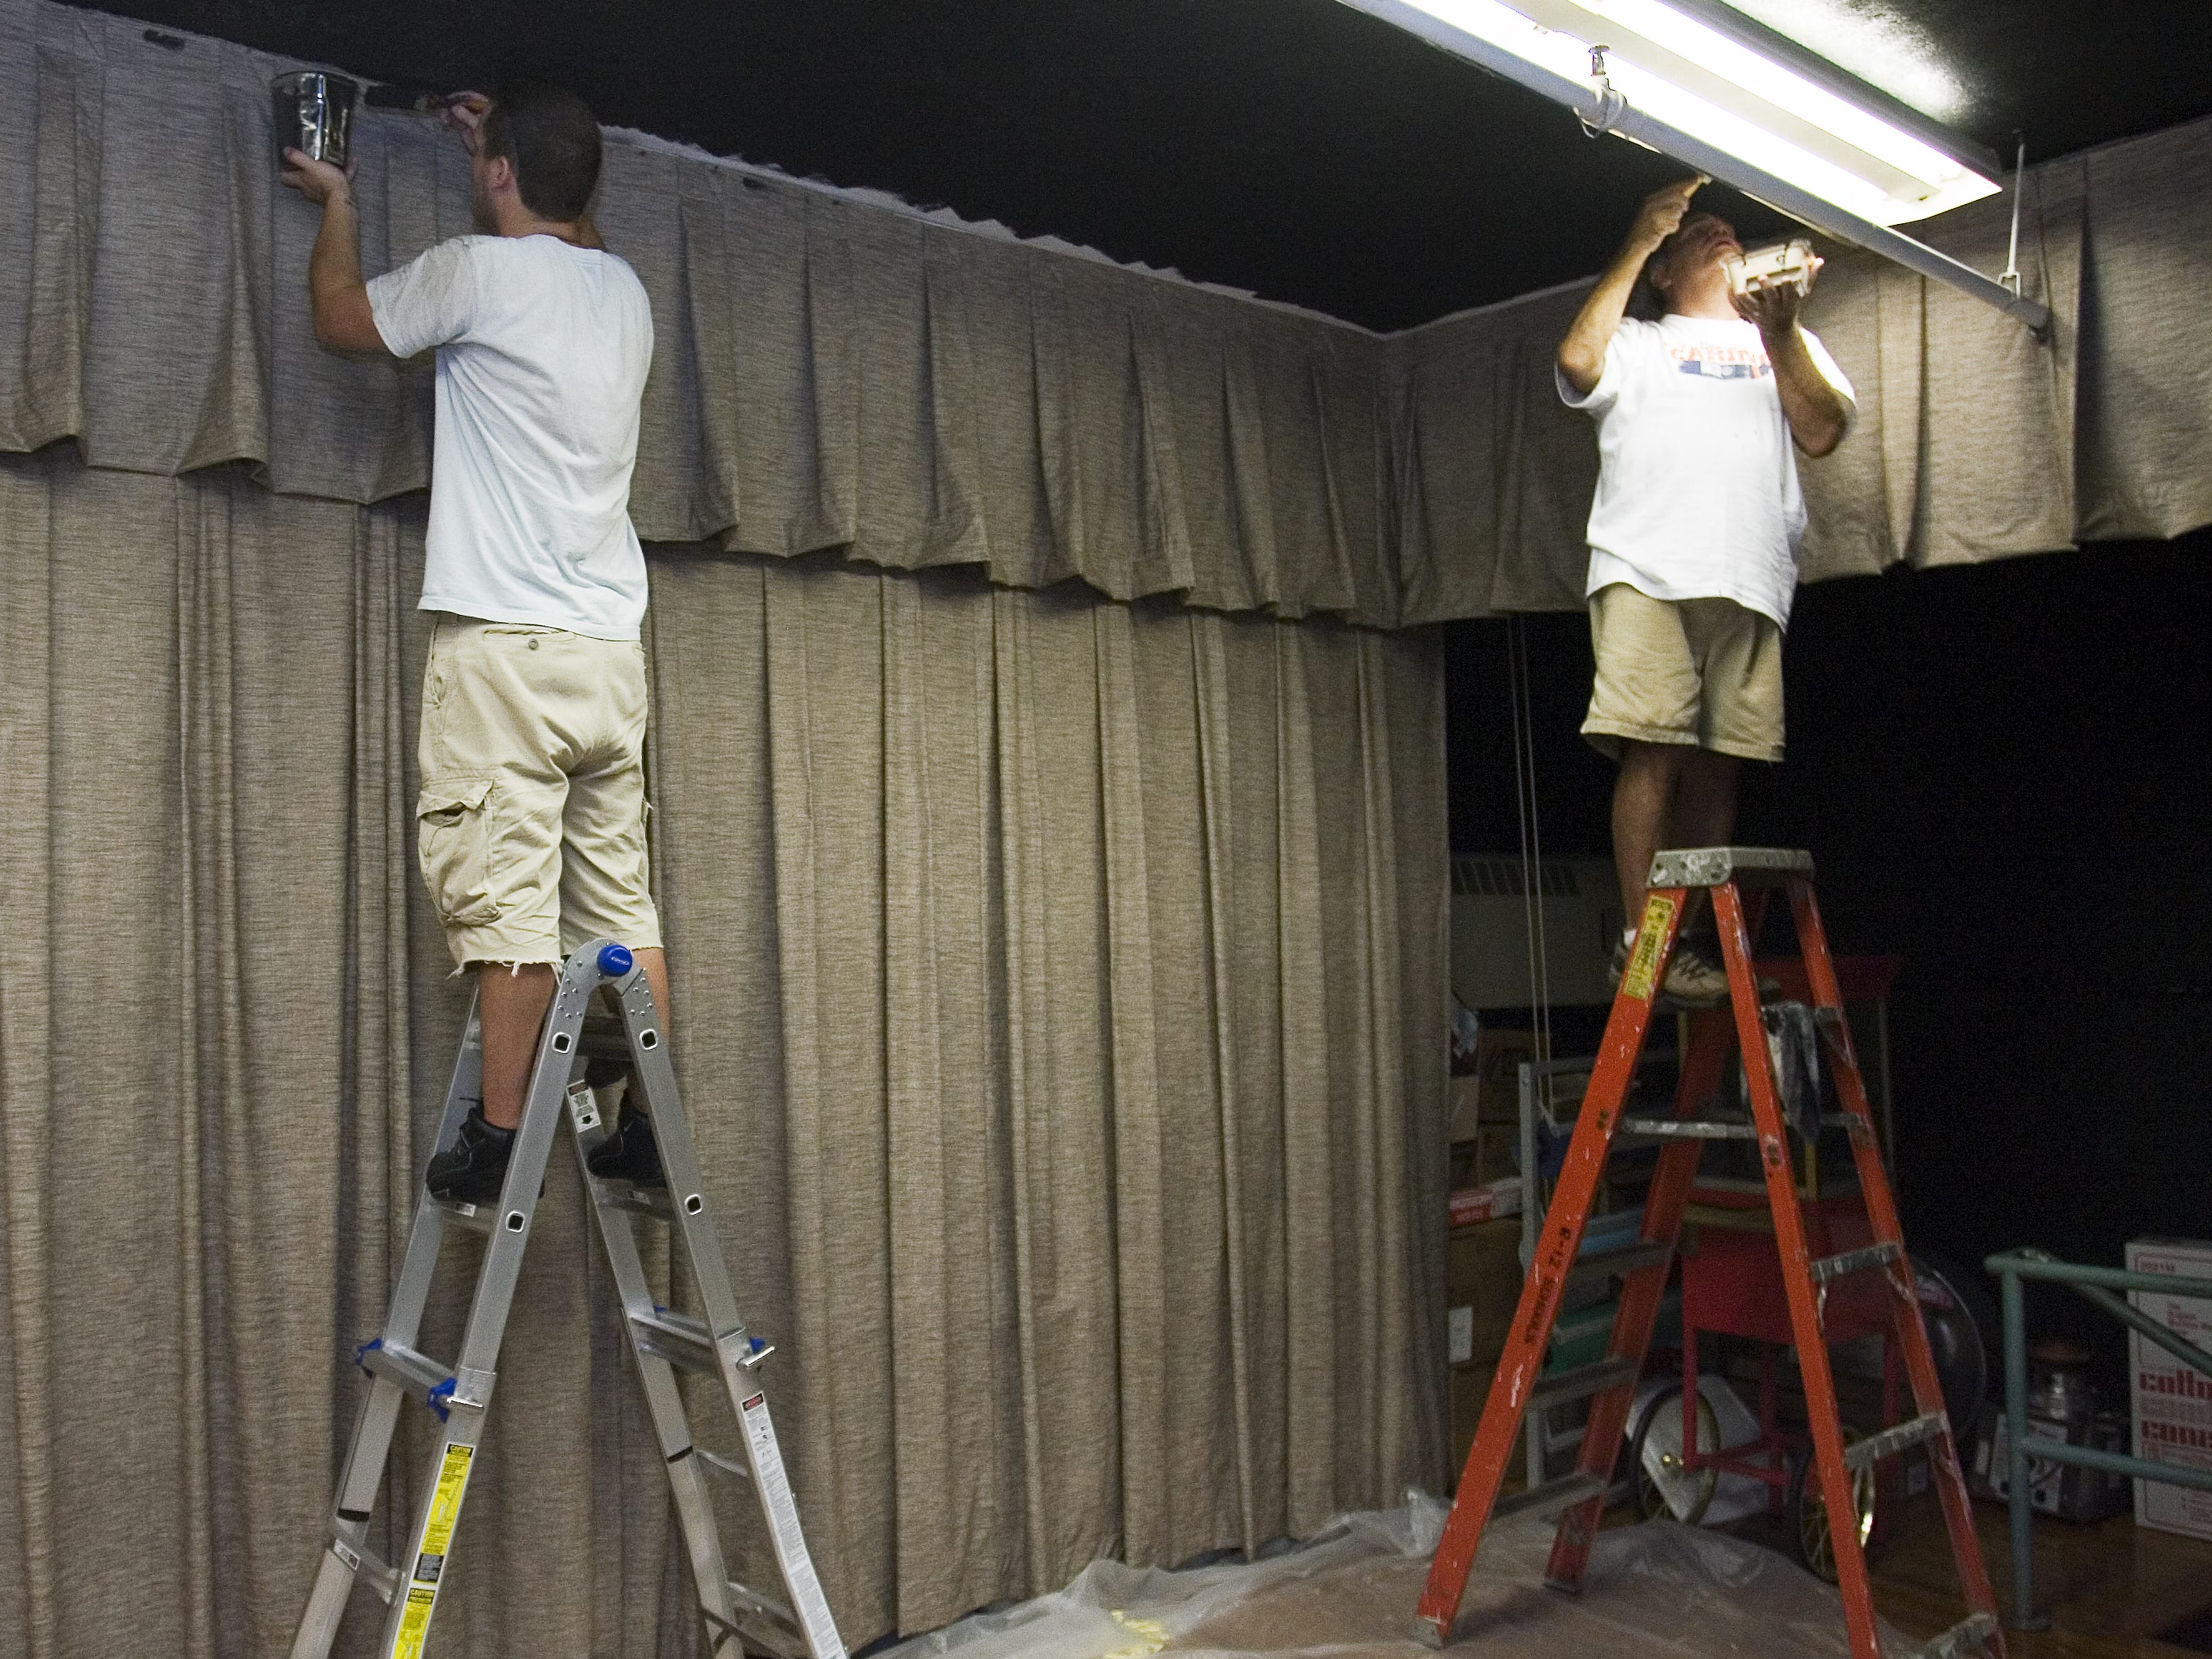 Boyd Allen (left) and Norman Kirsch, both with ESC Inc., paint the ceiling of the stage at Boyd Elementary on Thursday, Aug. 19, 2010. Allen and Kirsch were taking part in the 18th Annual Day of Caring.